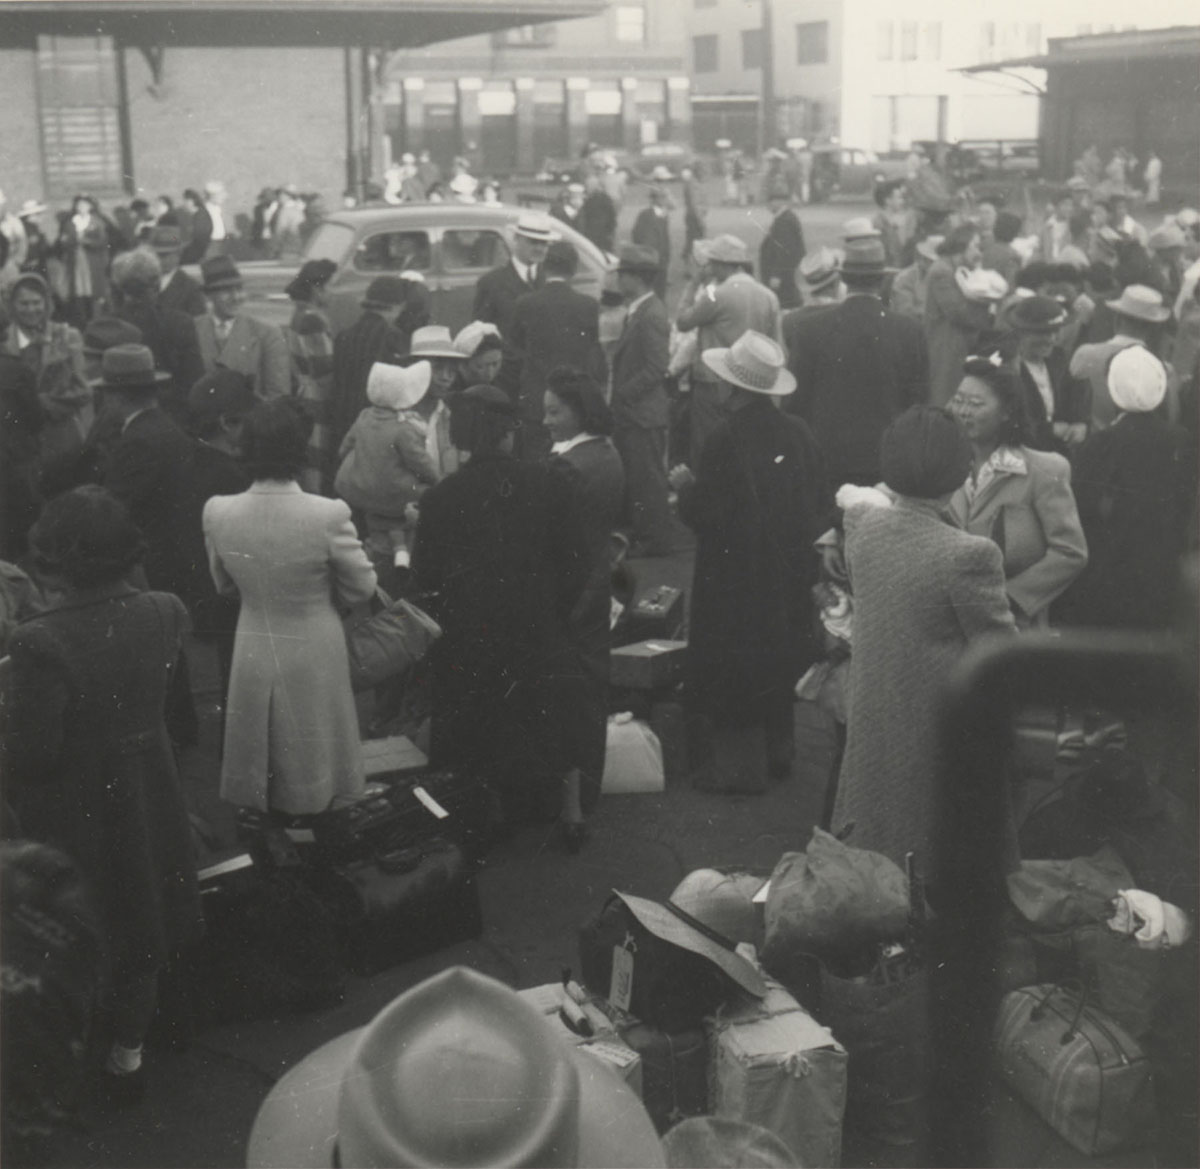 Japanese Americans wait at the old Santa Fe Station, Los Angeles, California. They are bound for Parker, Arizona (Poston concentration camp), May 29, 1942. Gift of Susan K. Mochizuki and Ann K. Uyeda.